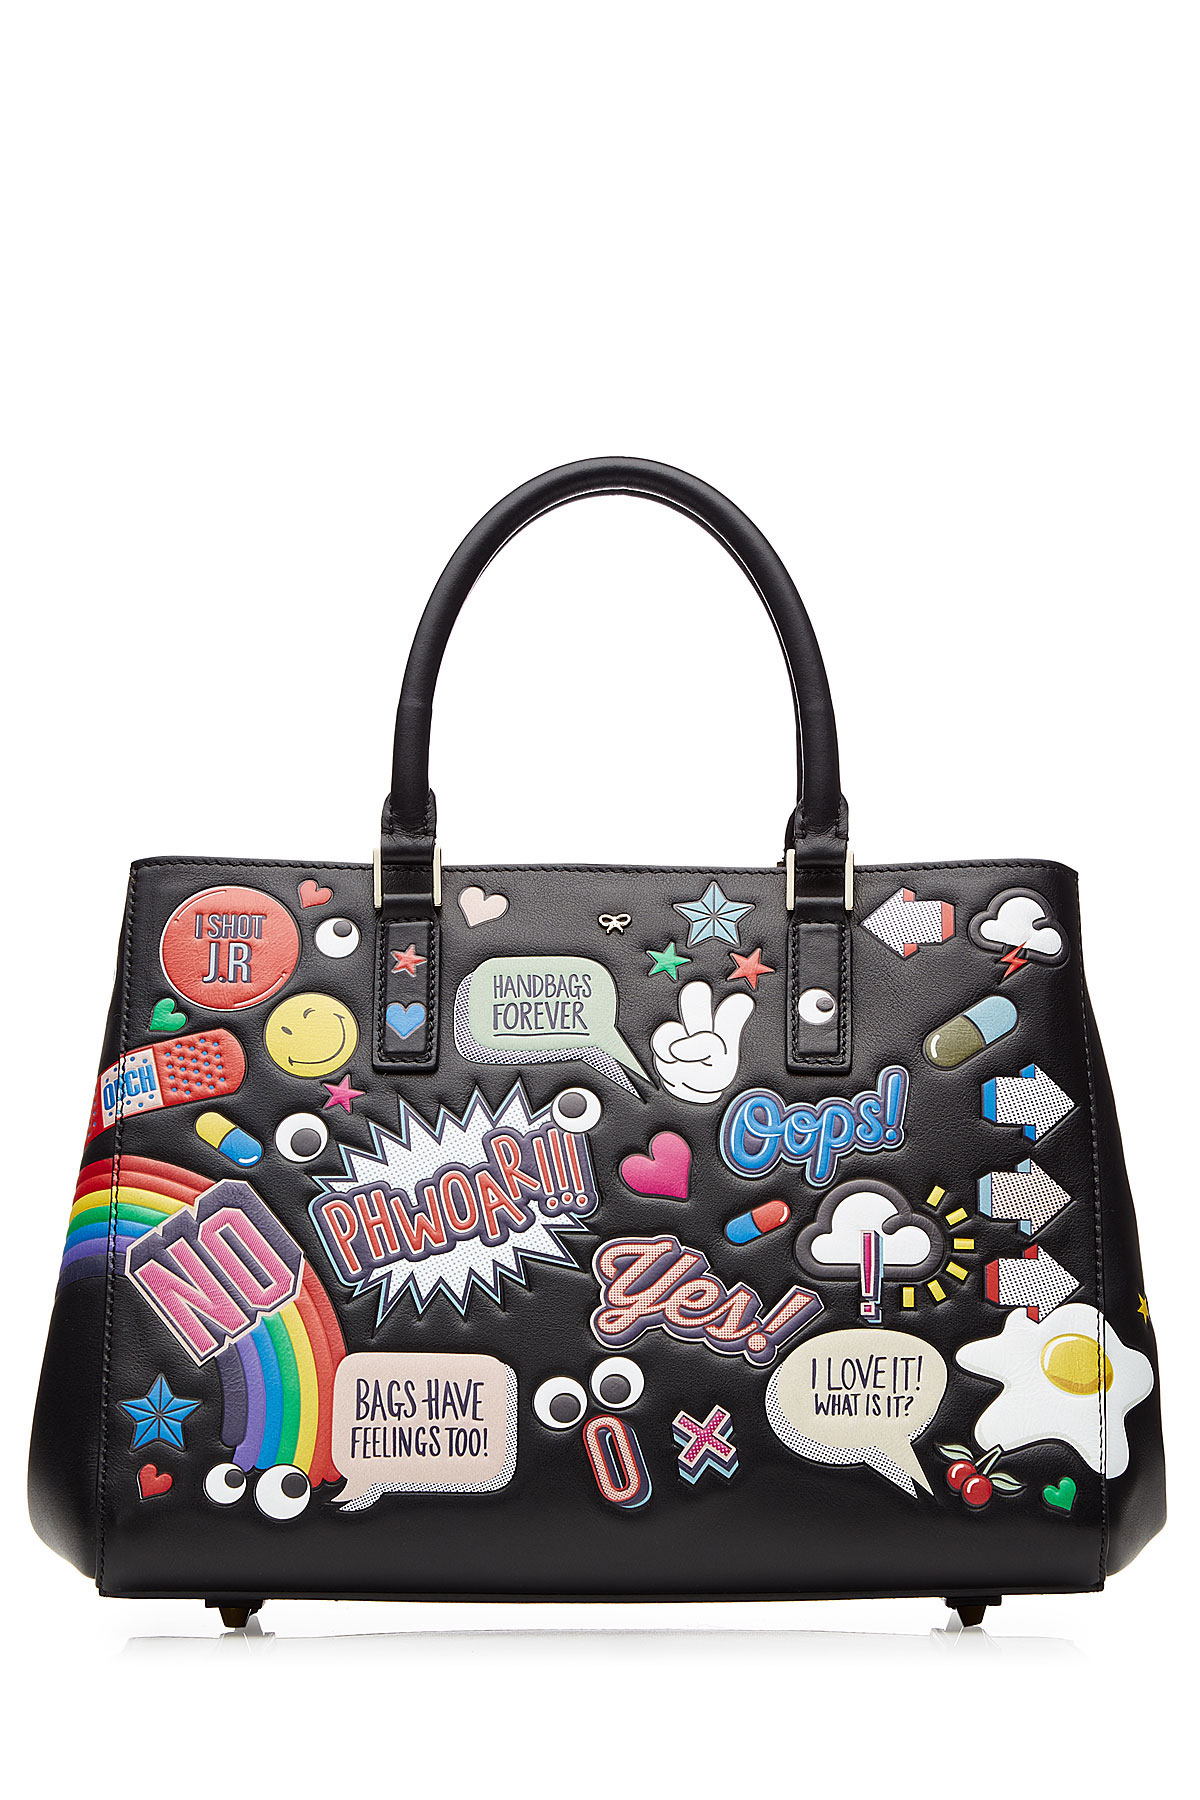 anya hindmarch leather sticker motif maxi ebury tote bag in black lyst. Black Bedroom Furniture Sets. Home Design Ideas